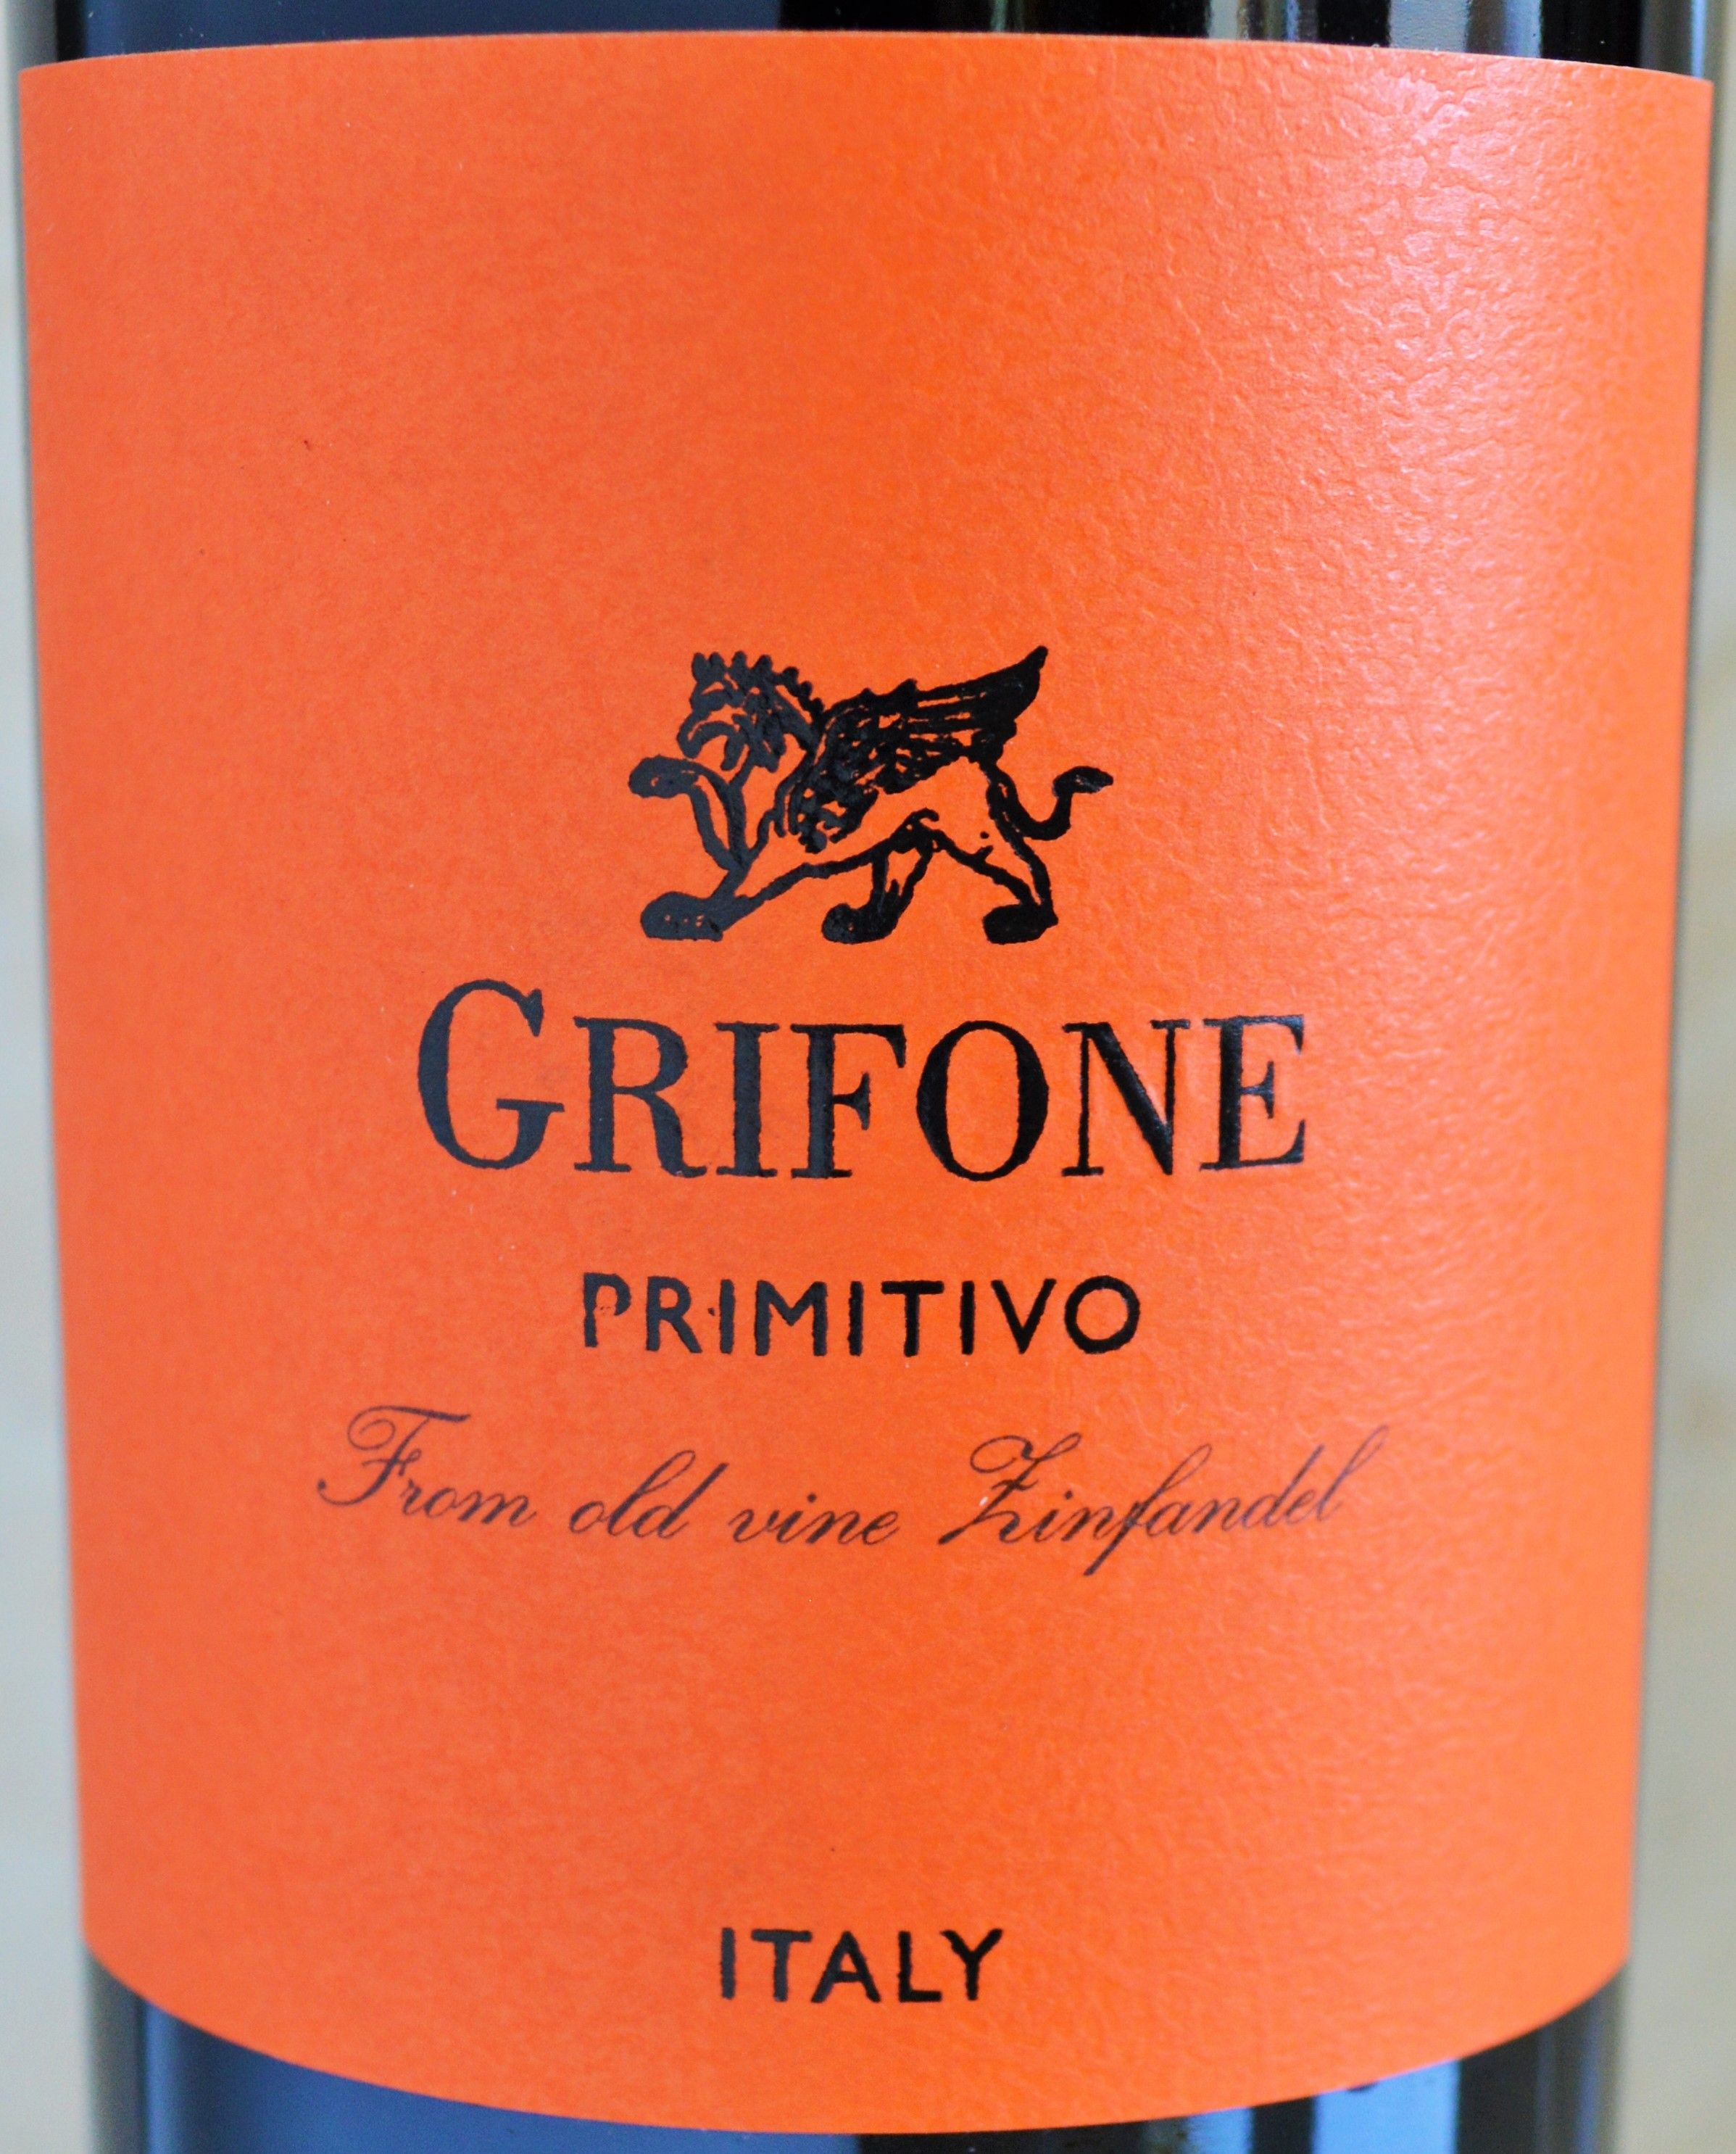 Grifone Primitivo 2012 Review Can 5 Really Buy You Old Vine Zinfandel Character The Grifone Pimitivo Makes A Comp Trader Joe S Wine Trader Joes Wine Prices